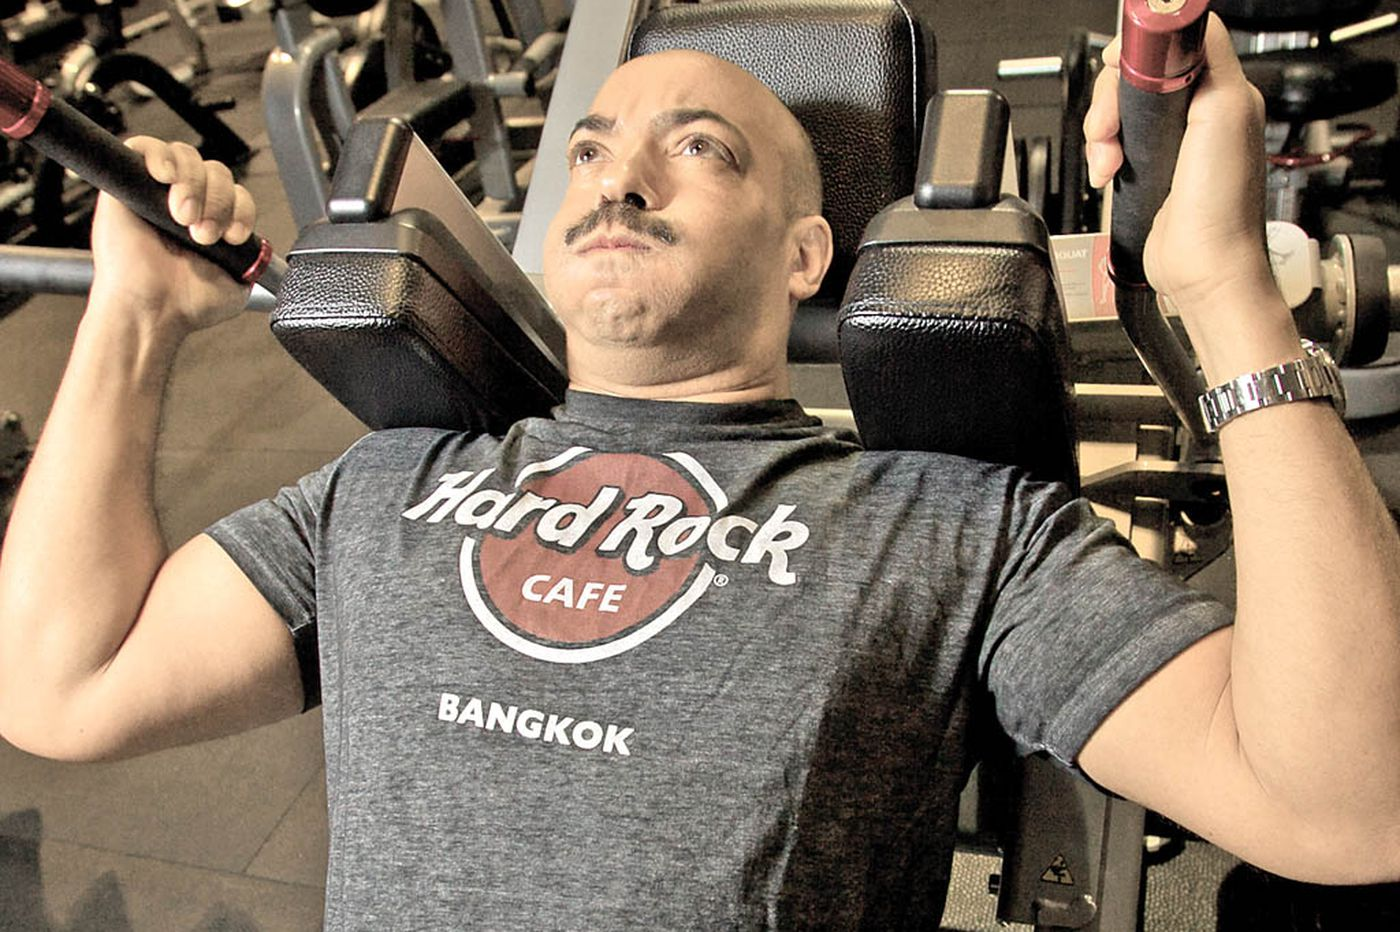 District Attorney drops 45 pounds to fight ALS